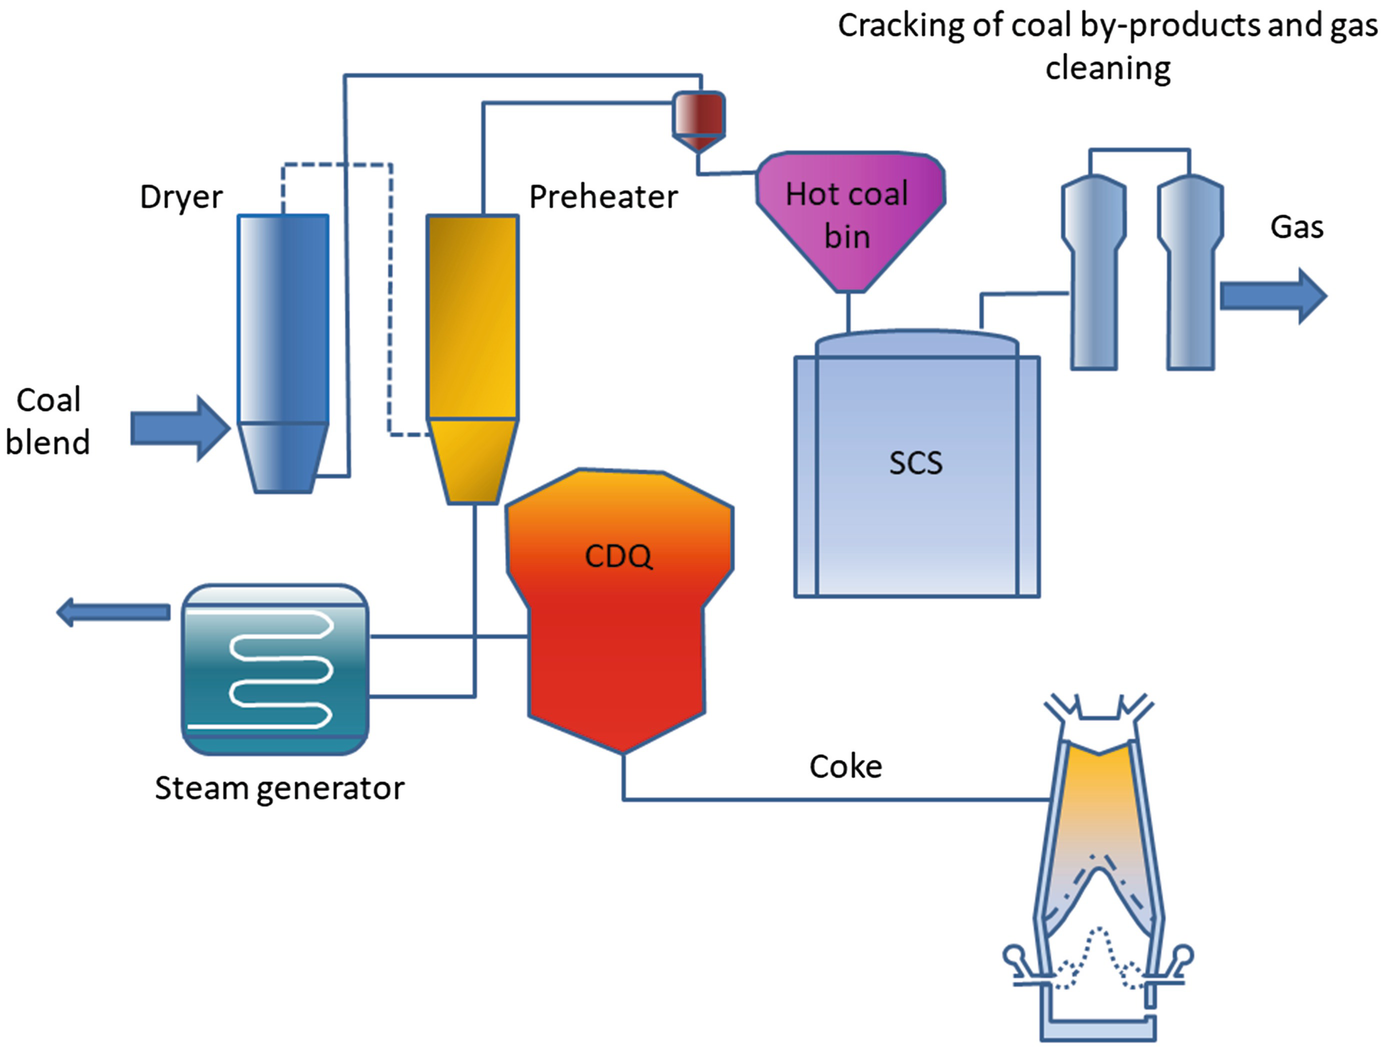 Coke Making: Most Efficient Technologies for Greenhouse